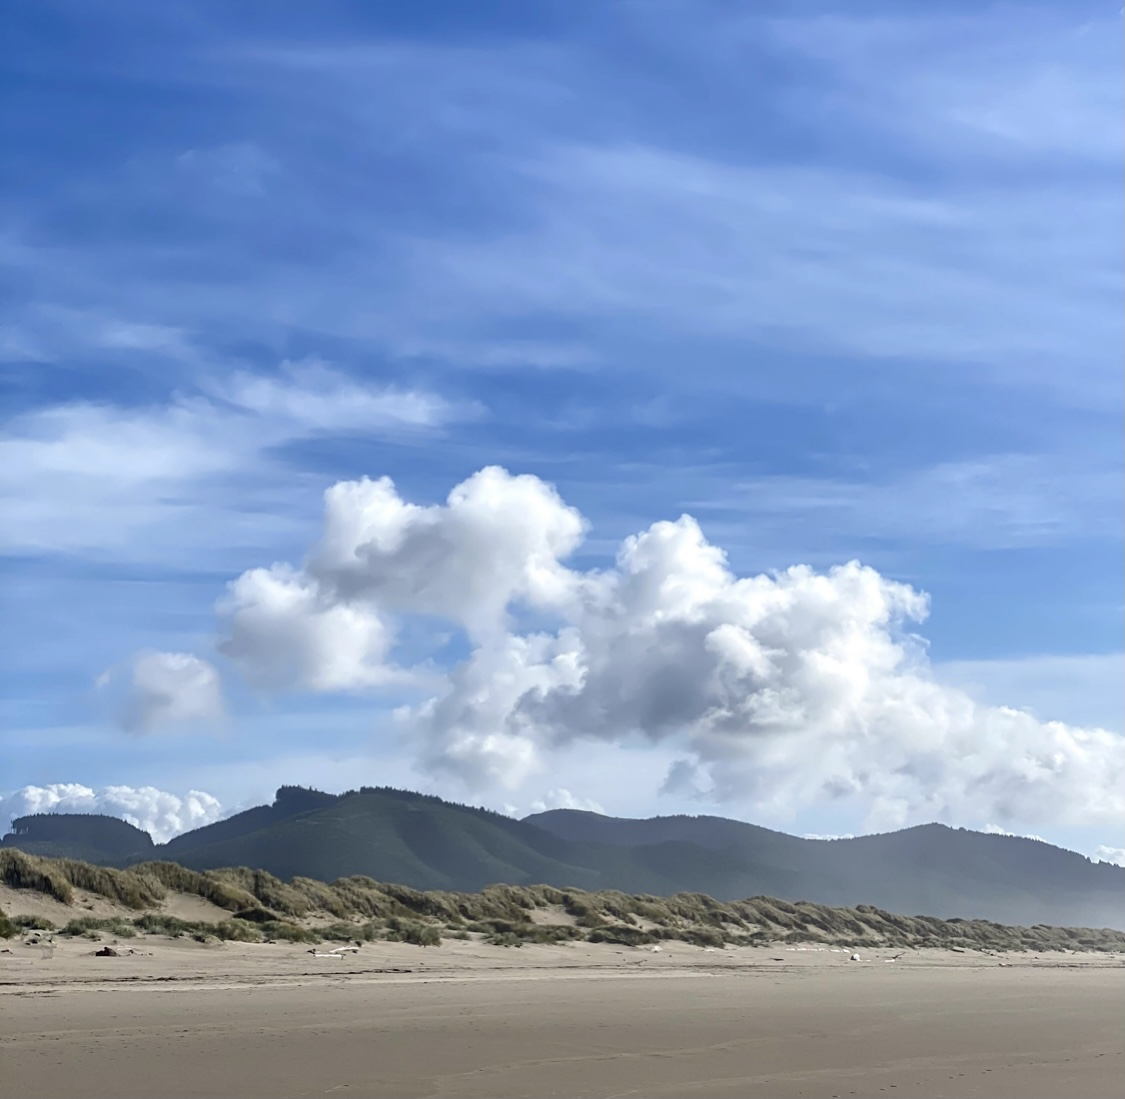 Walking the Beach in Nehalem Bay State Park Savory Travel Adventures Steven Shomler